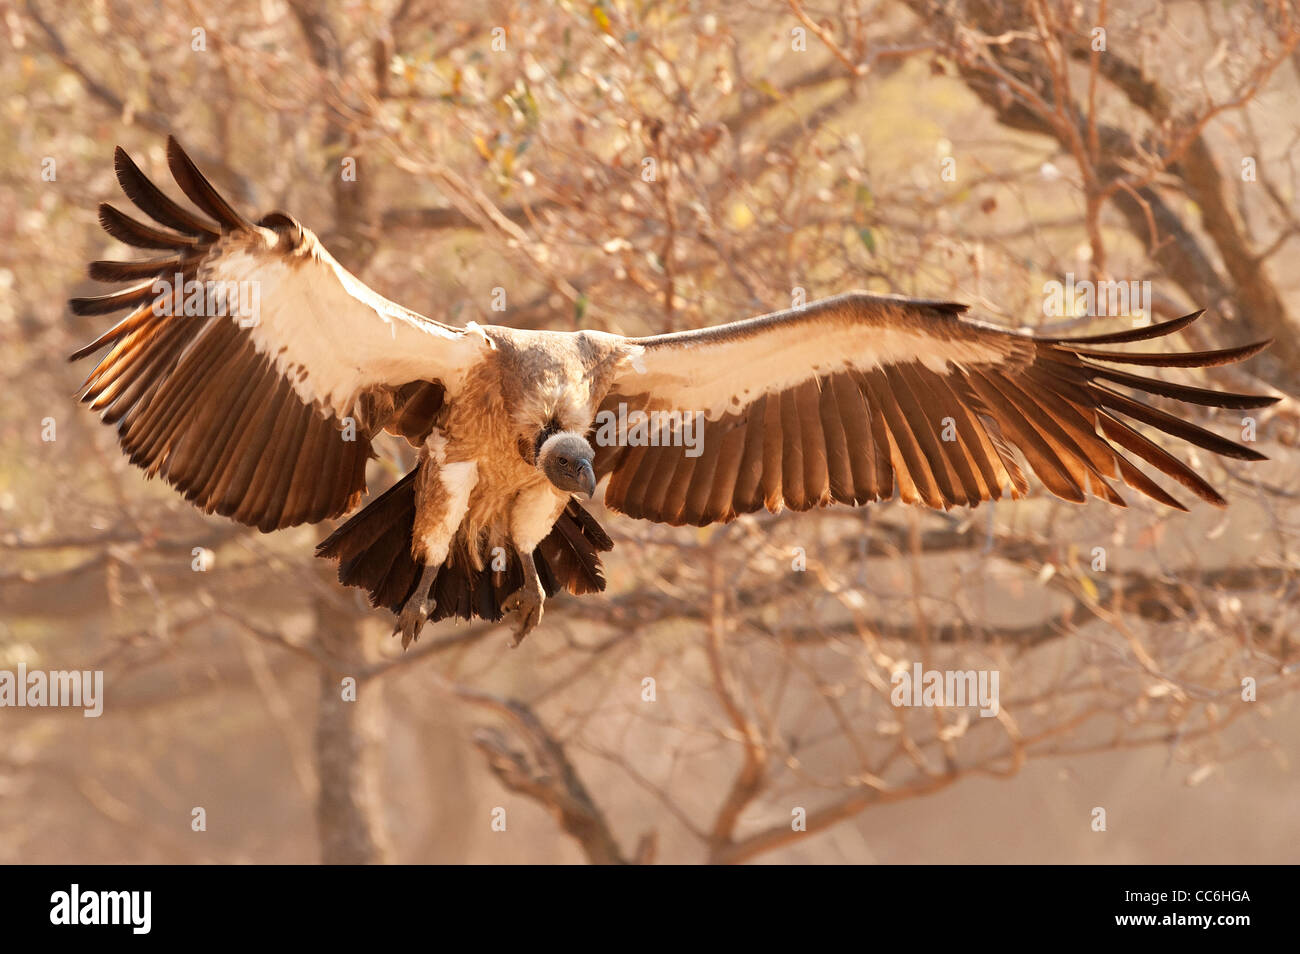 A White-backed Vulture landing to feed - Stock Image